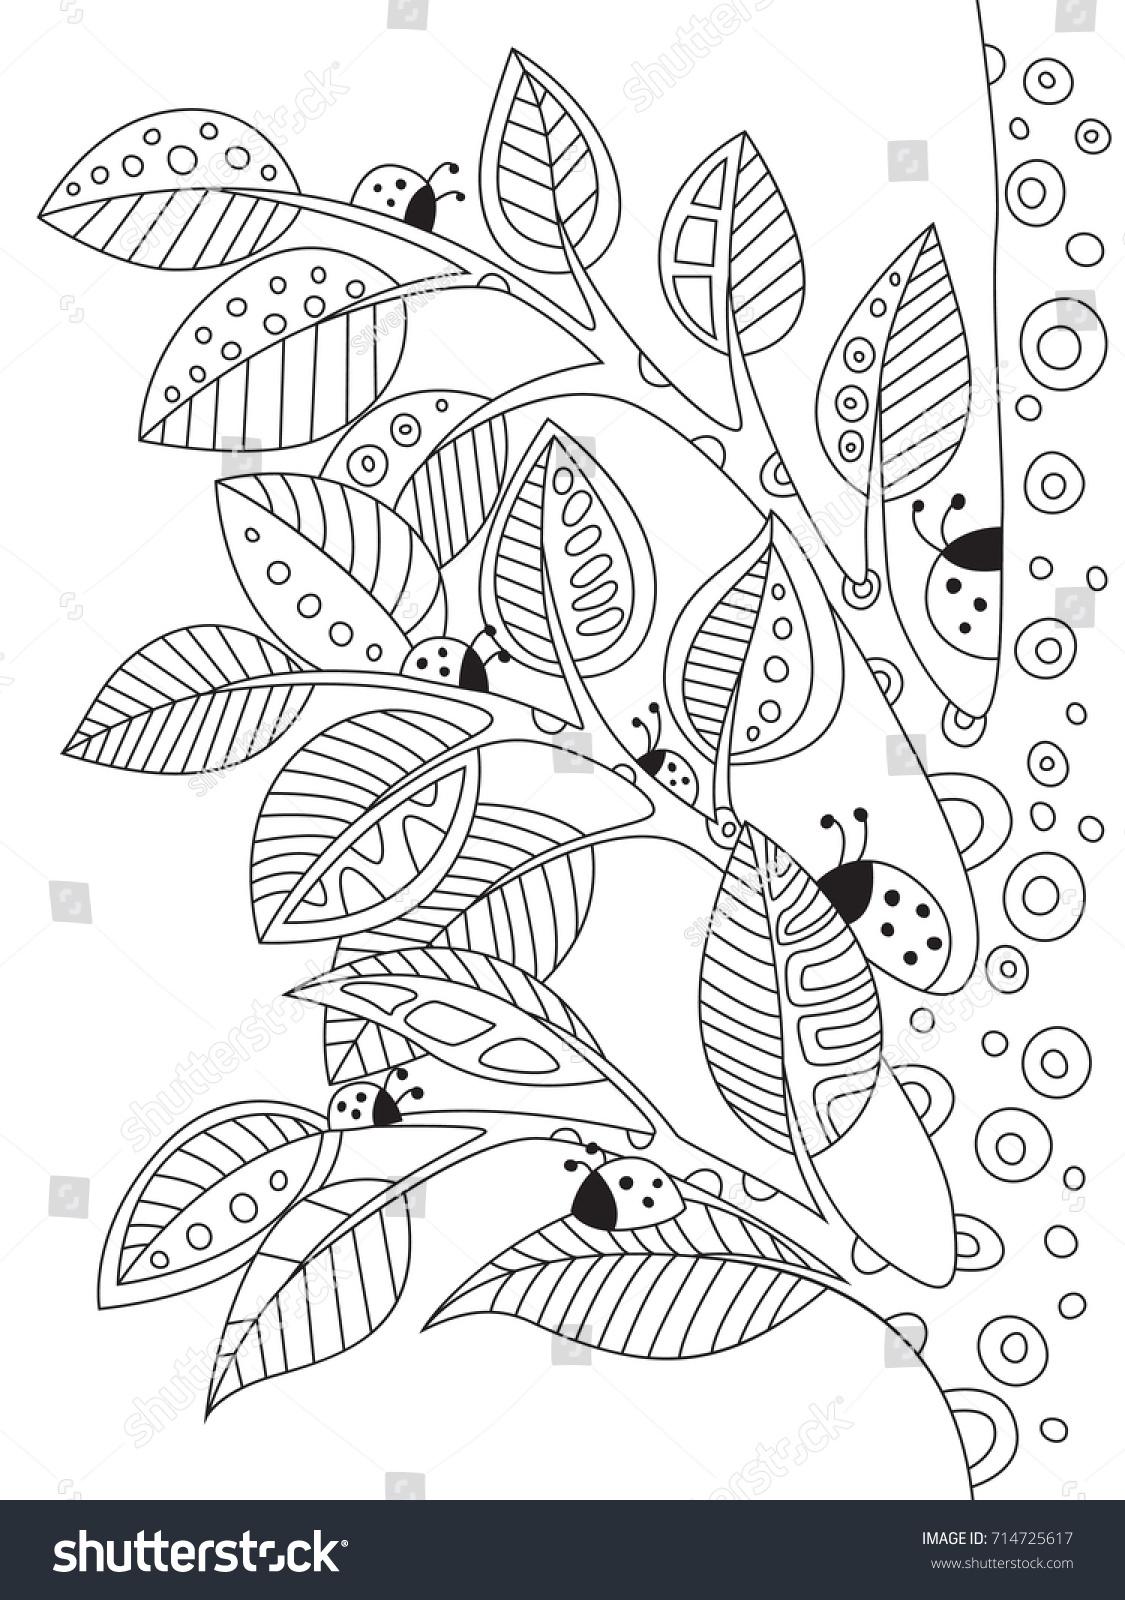 outlined doodle antistress coloring book page stock vector